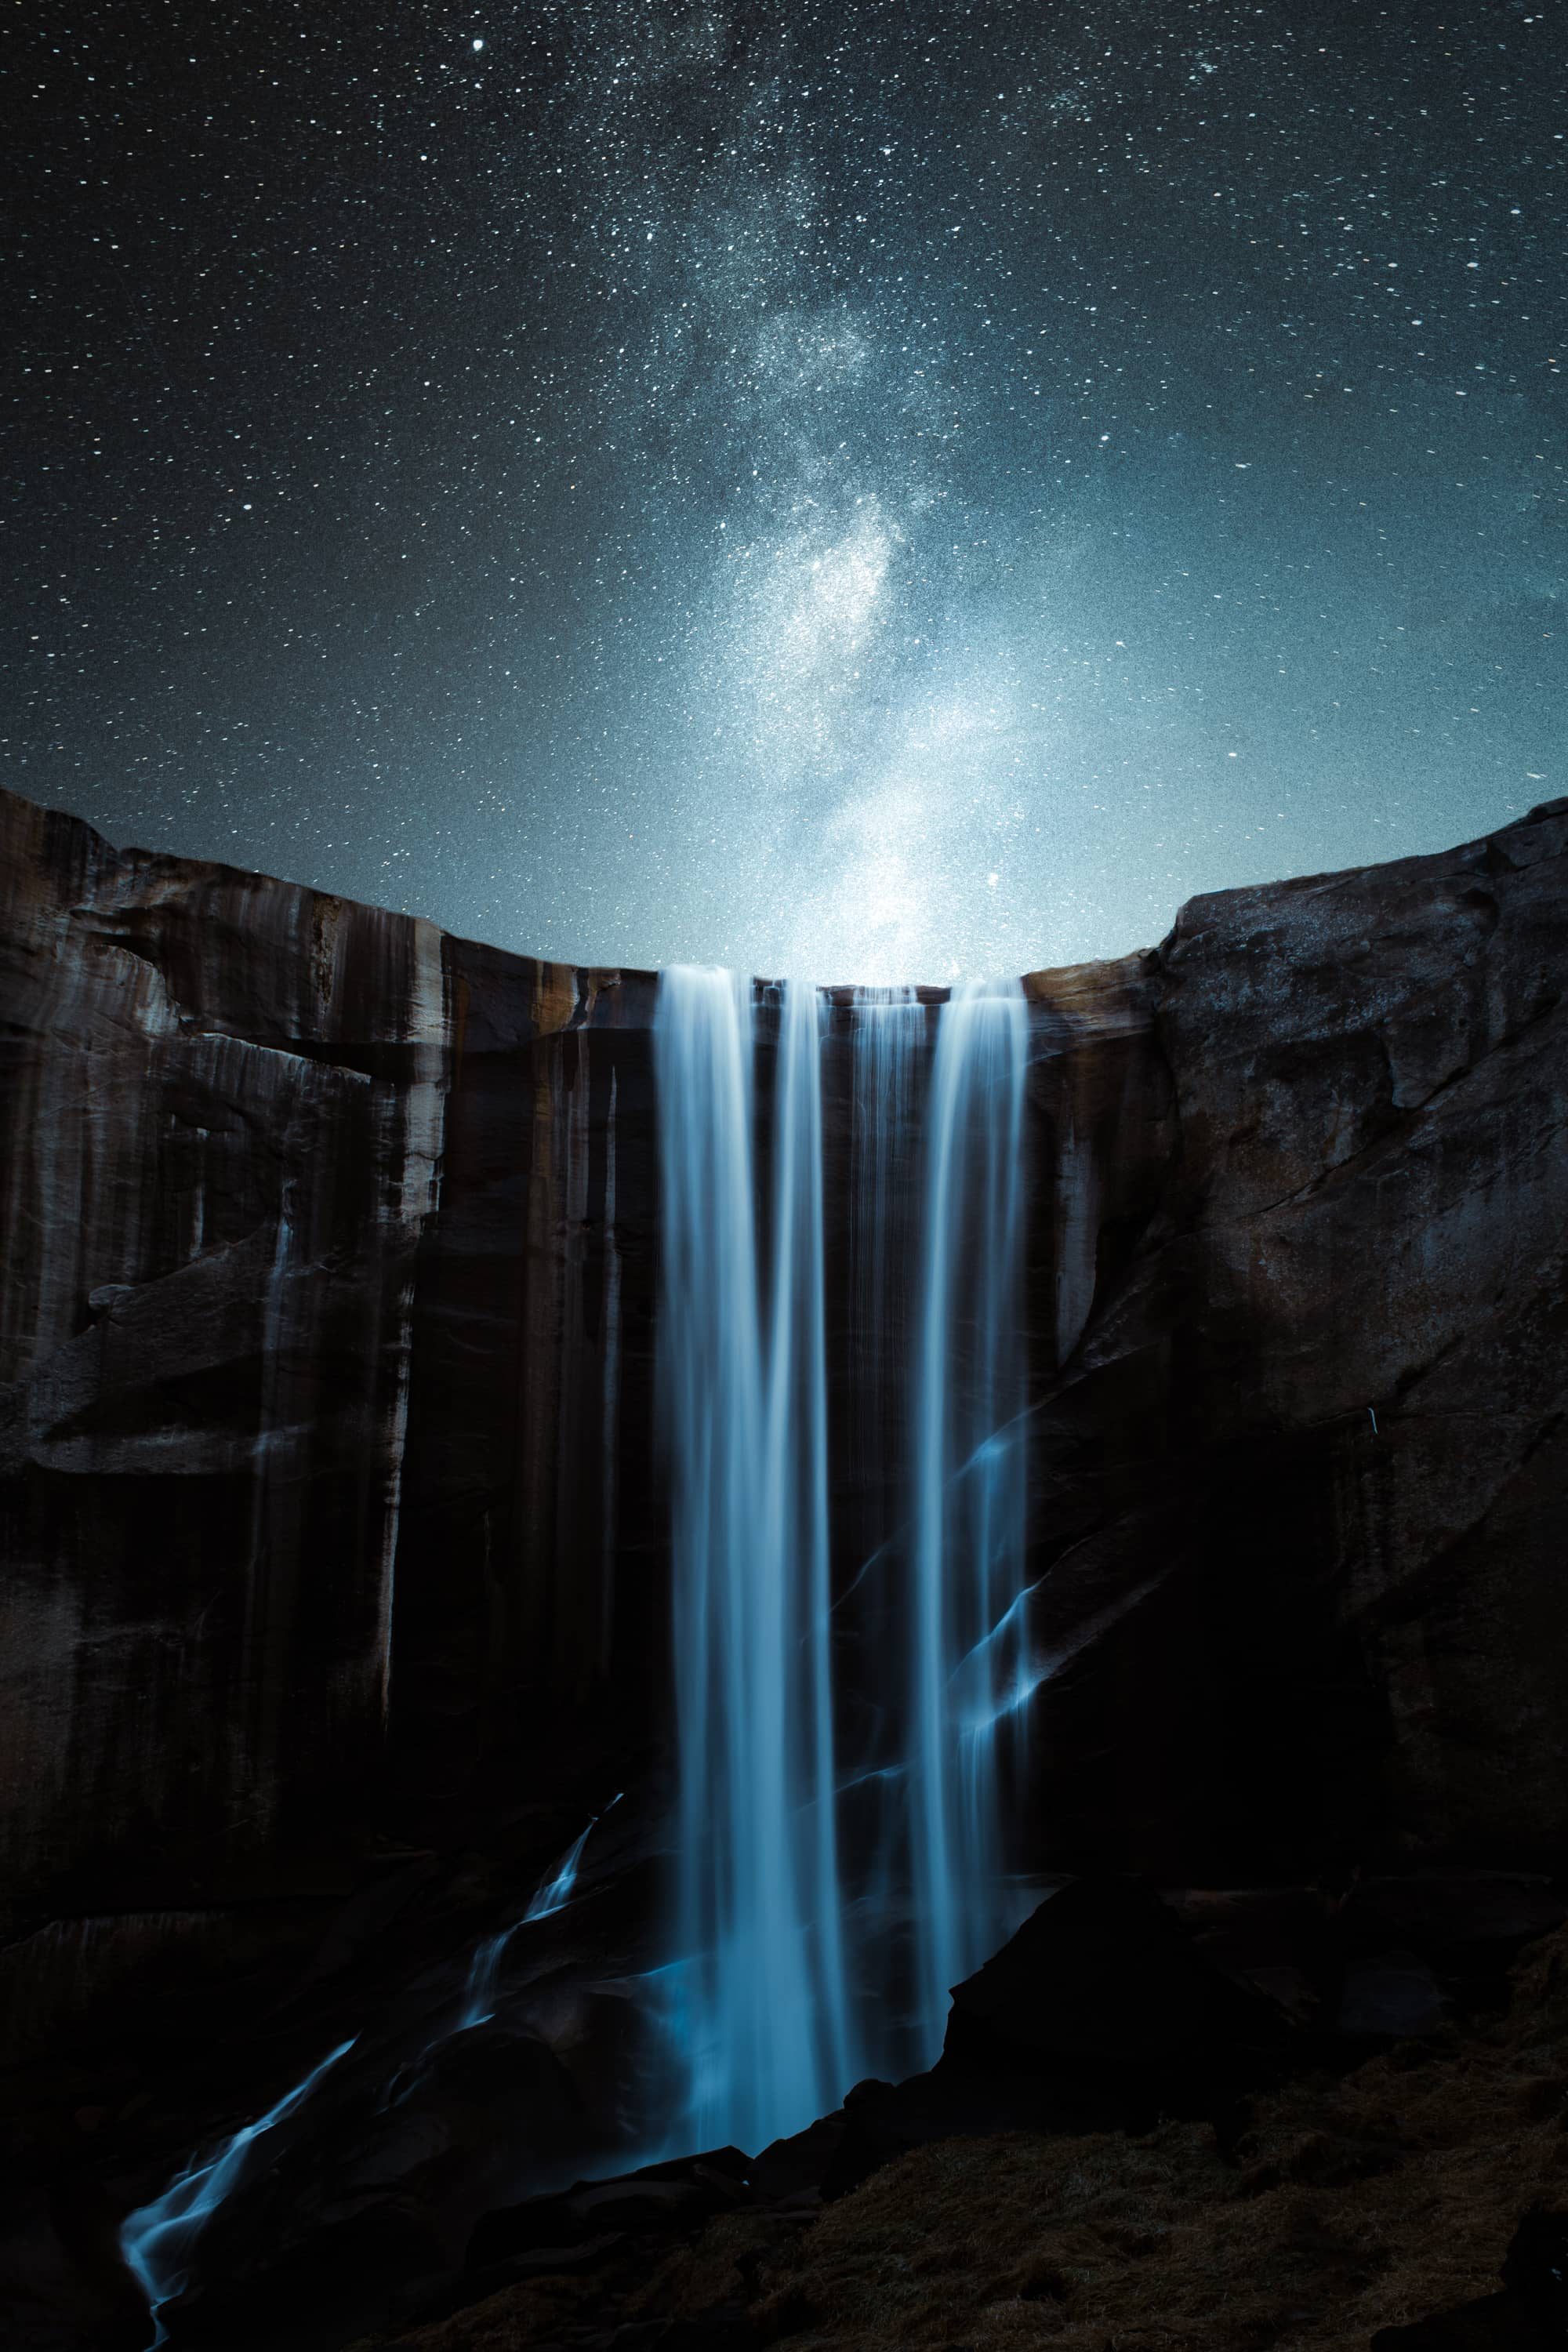 Waterfall With a Starry Night Sky by Jordan Mcgarth